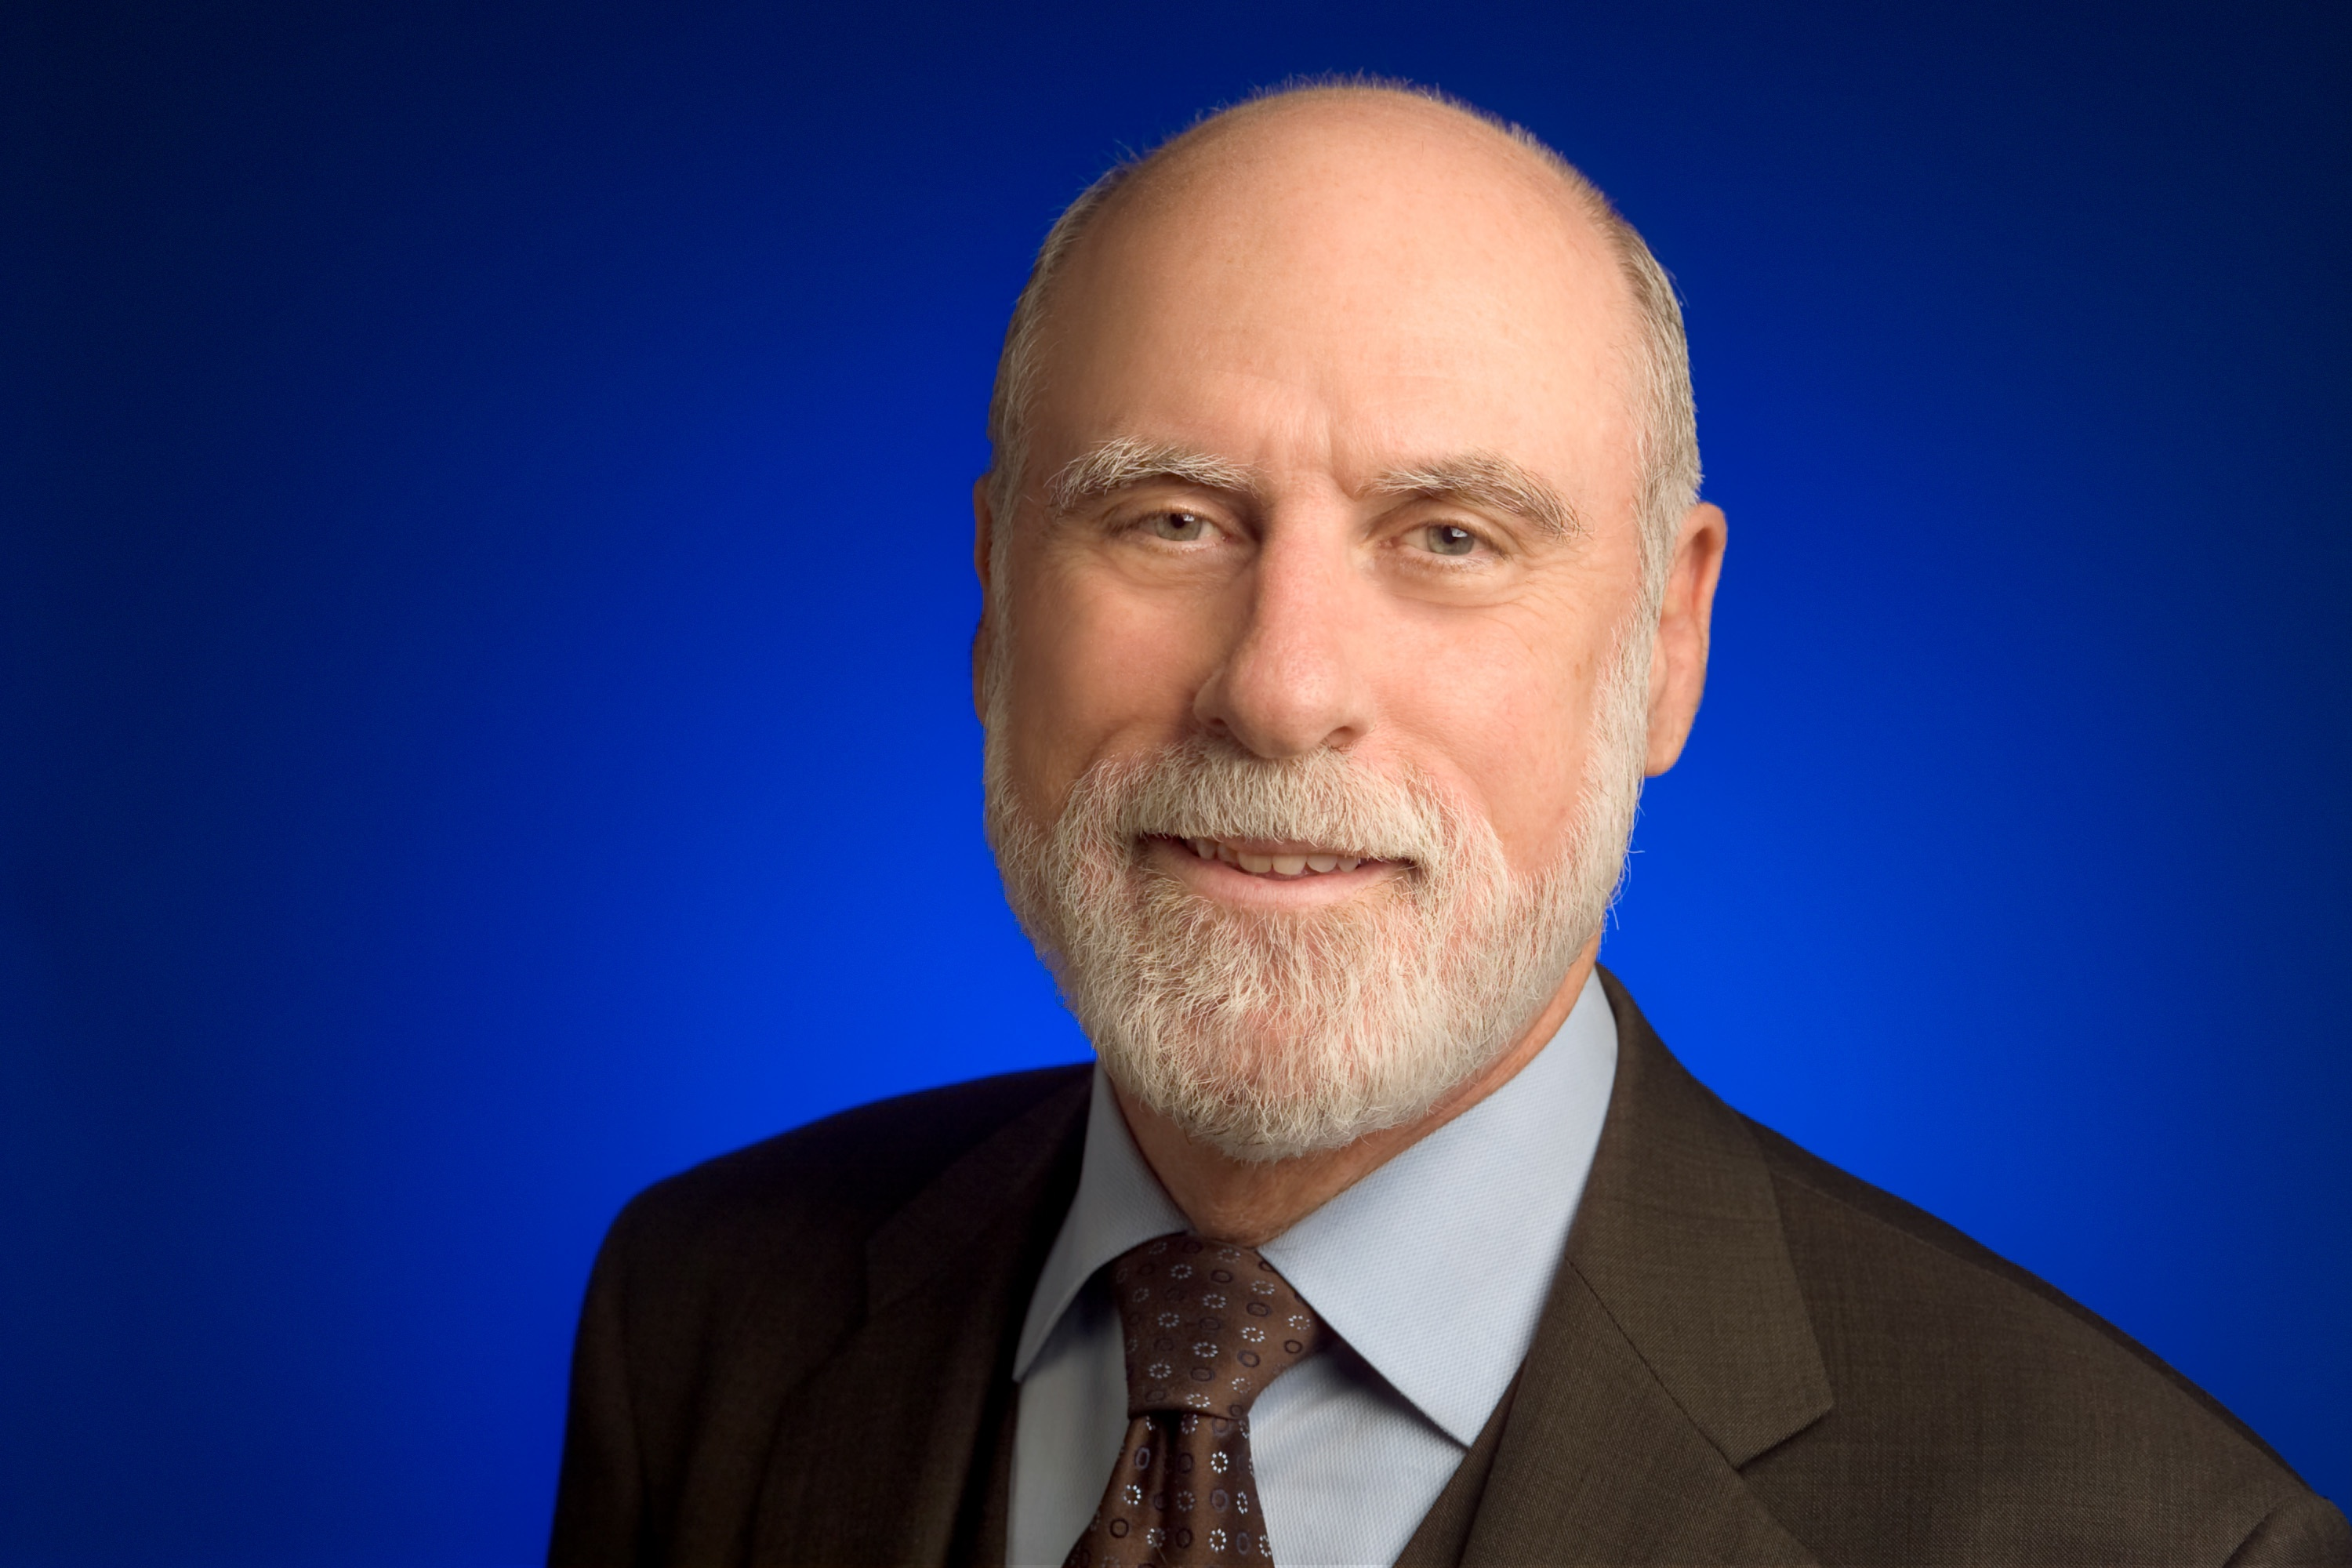 Vint Cerf Net Worth